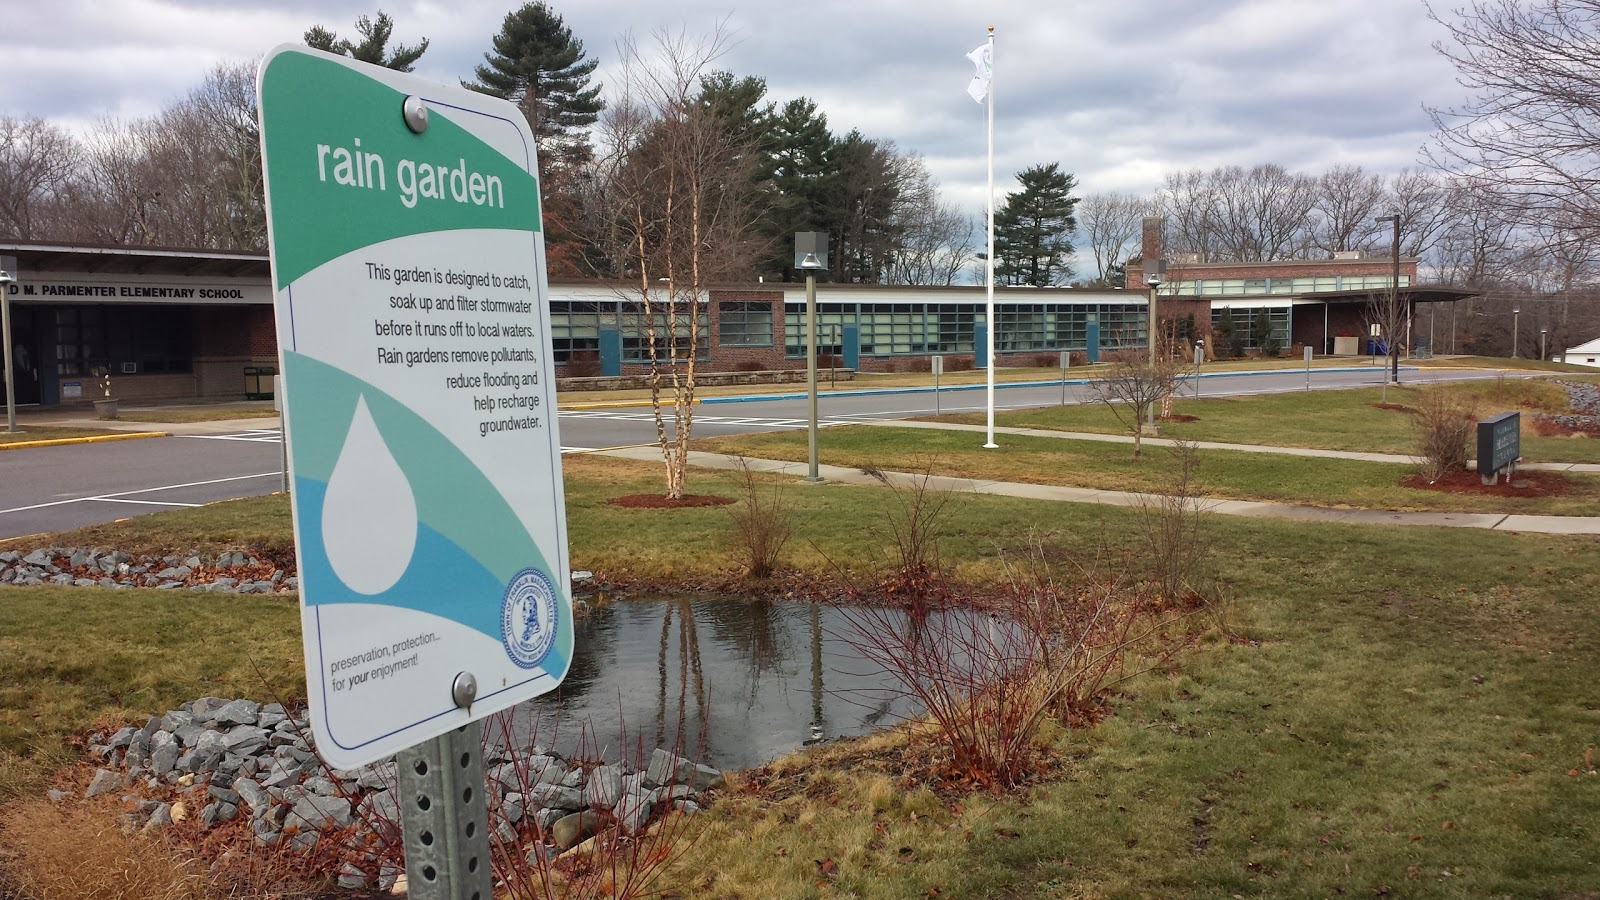 one of the many rain gardens around Franklin can be found at the Parmenter School